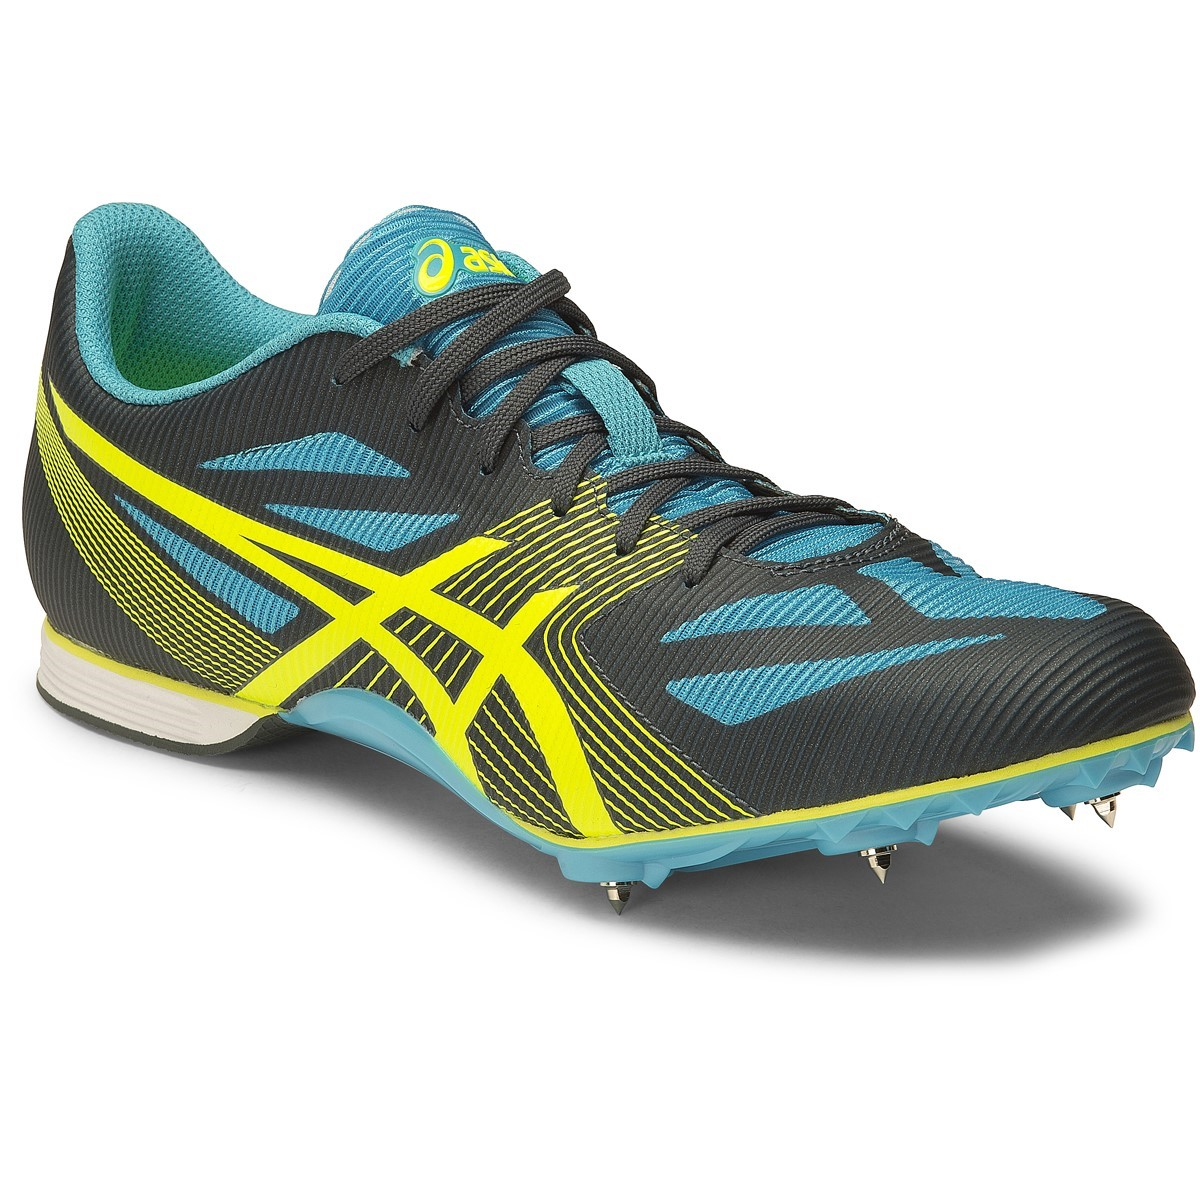 Asics Hyper MD 6 - Mens Middle Distance Track Spikes - Dark Slate Flash  Yellow 2c071cc4d